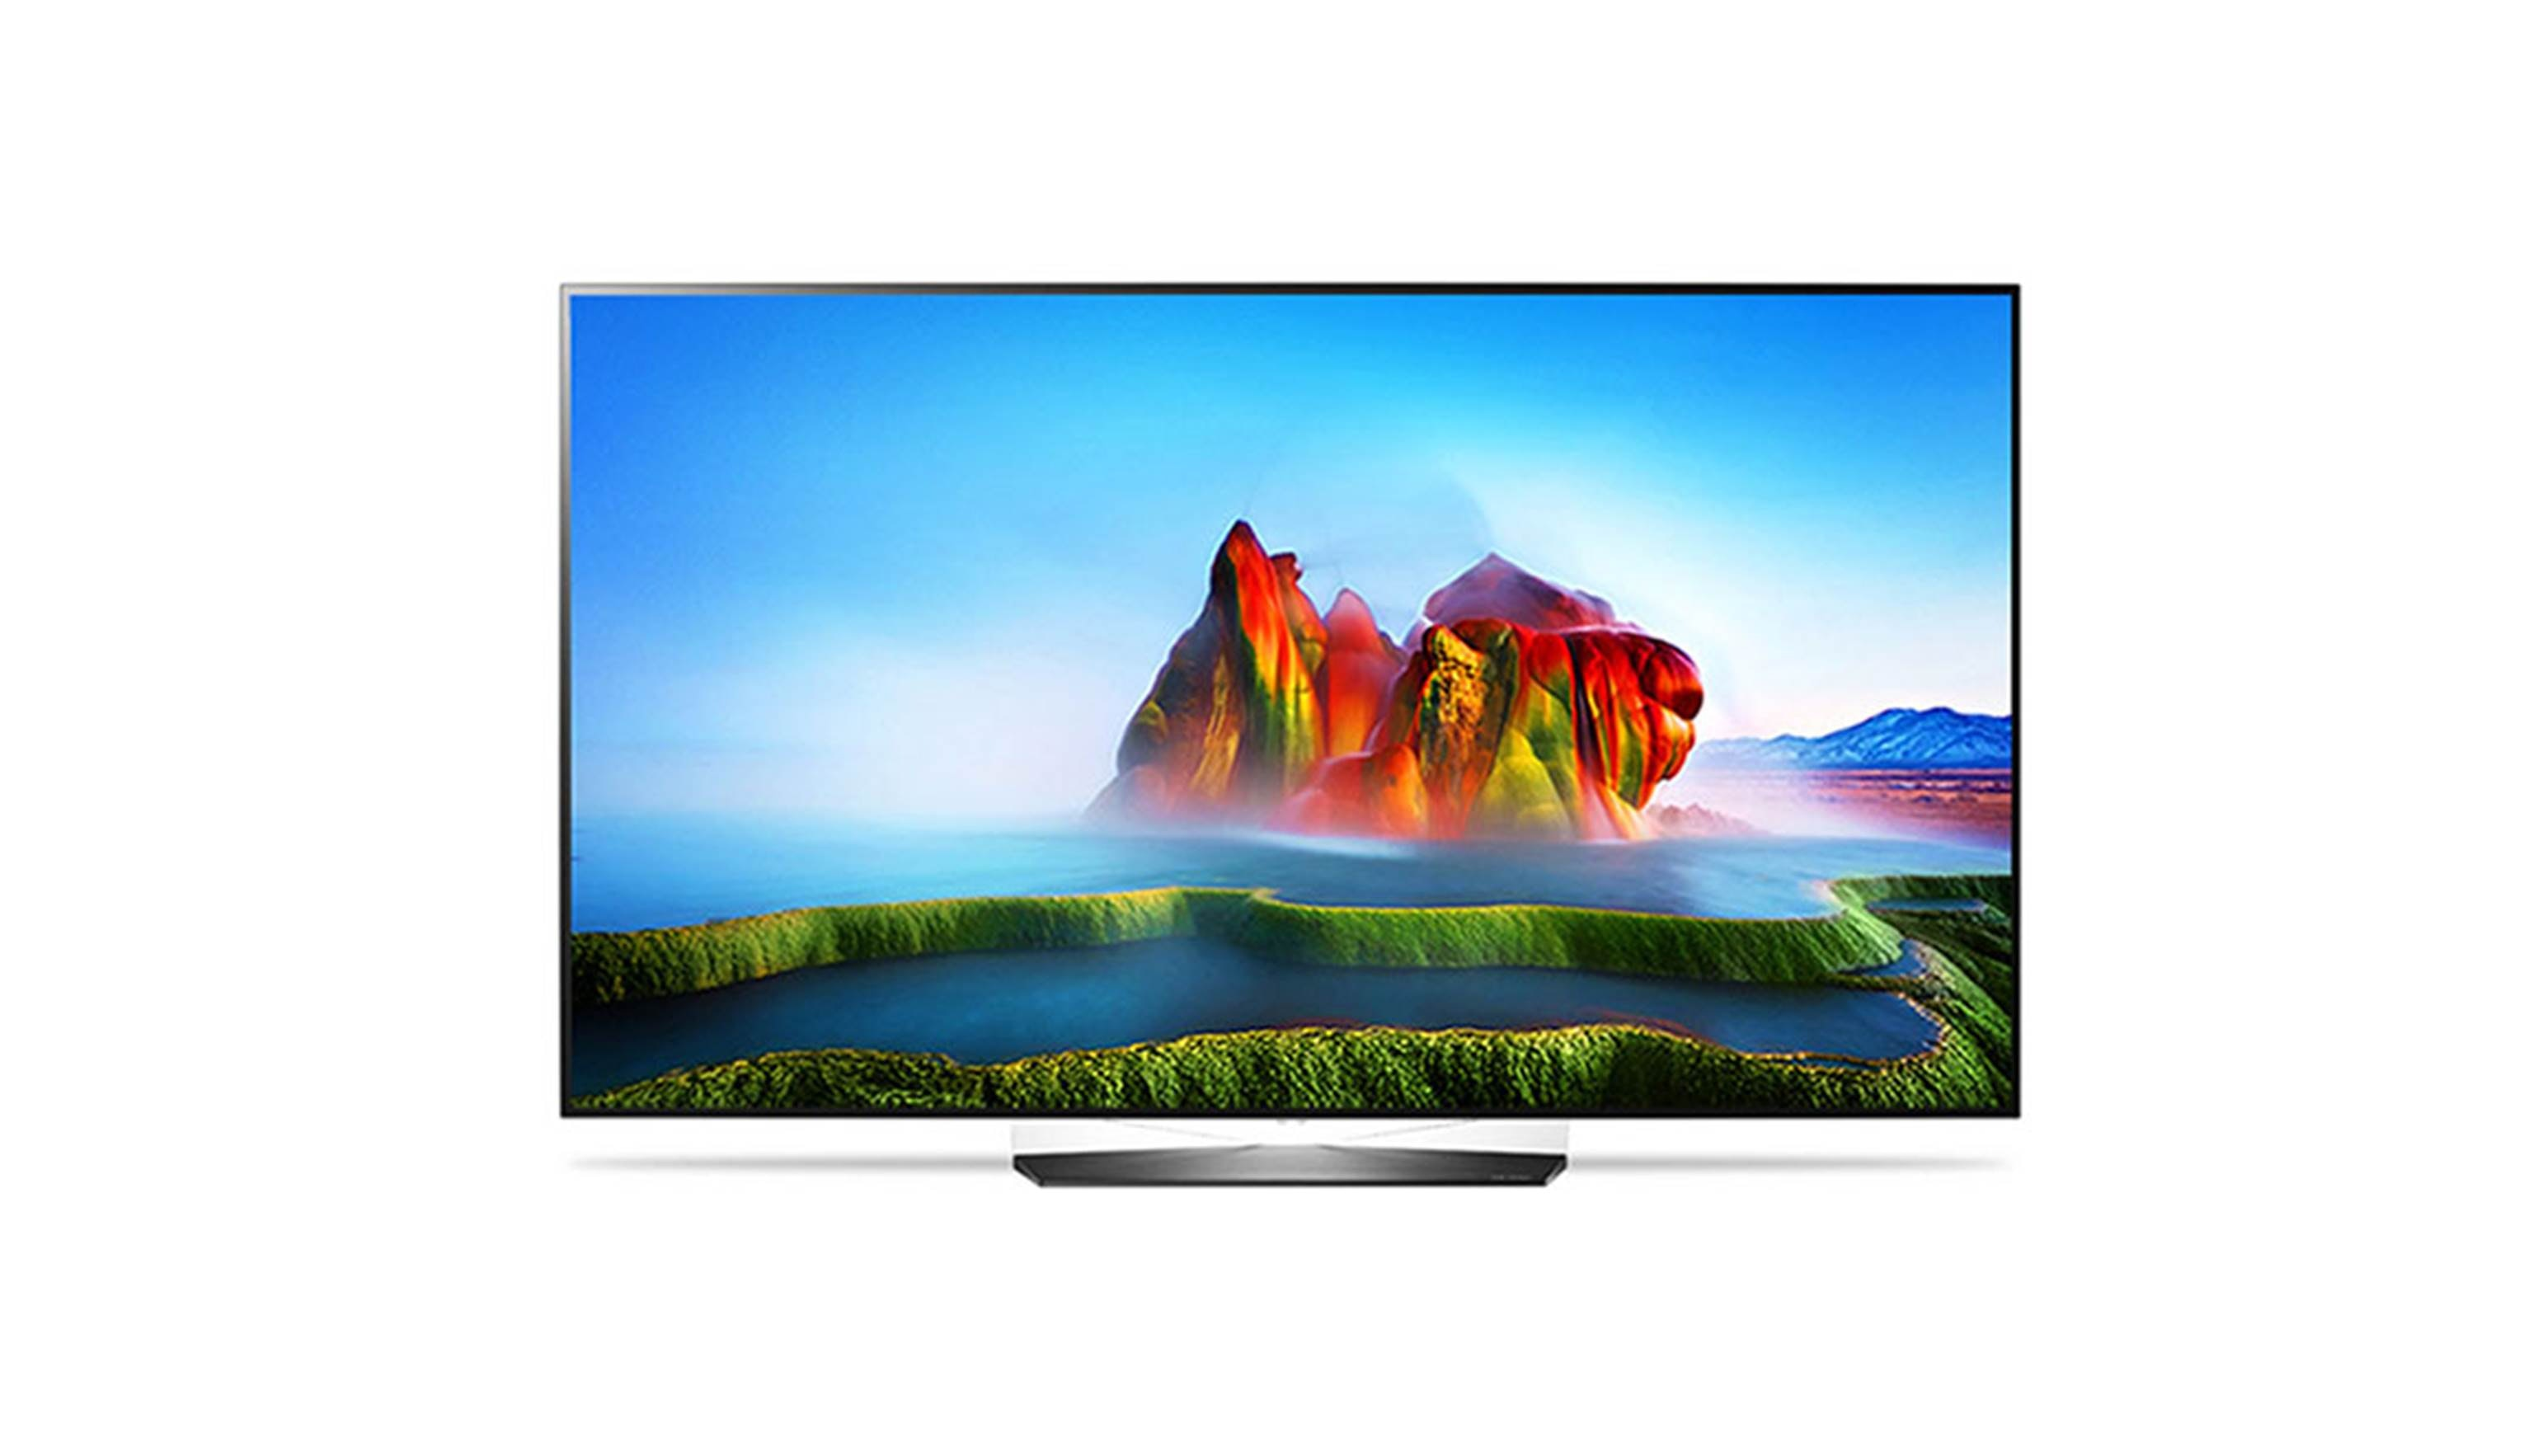 LG EG9A7T 55 2K OLED Smart TV (1)